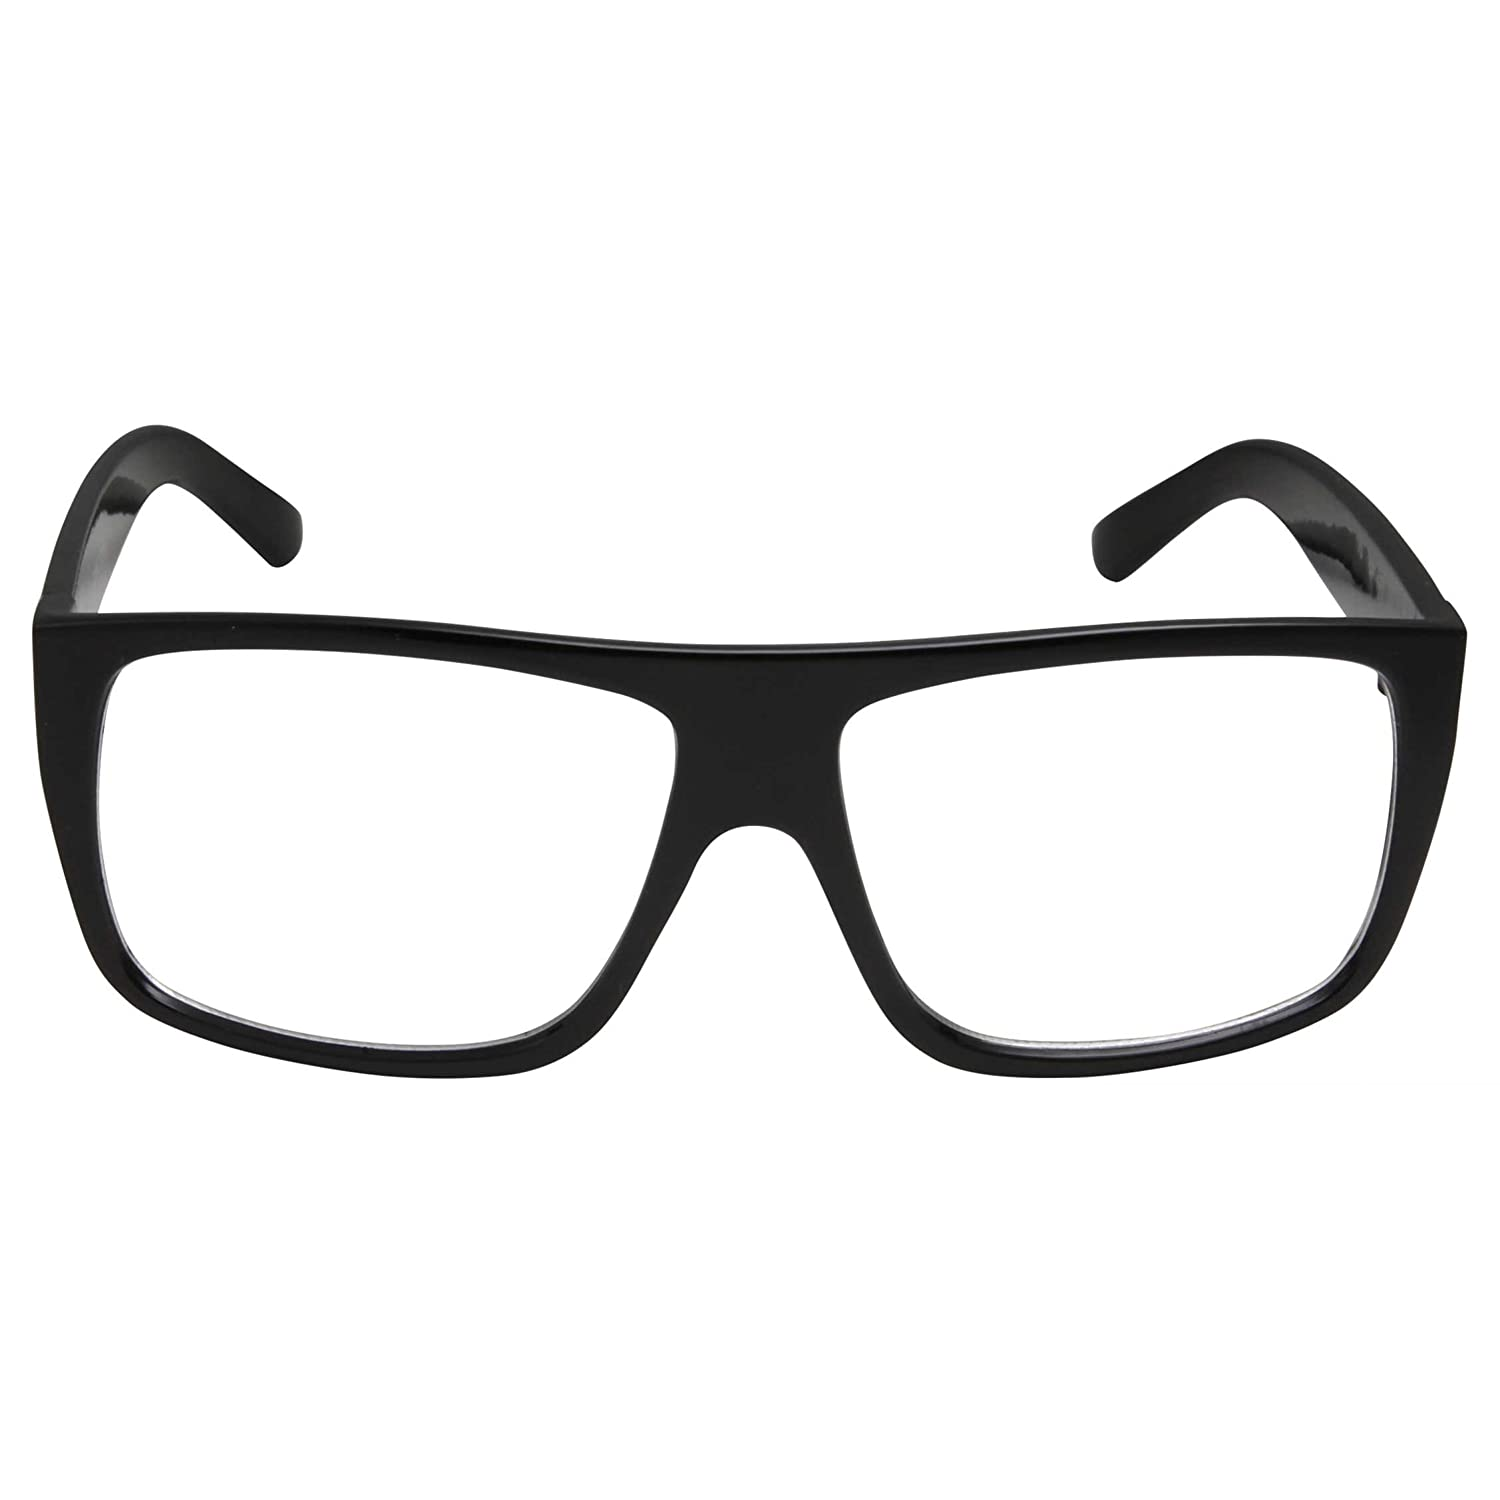 1058ab121c Amazon.com  grinderPUNCH Black Square Non-Prescription Clear Lens Glasses  Flat Top Mob Style  Clothing